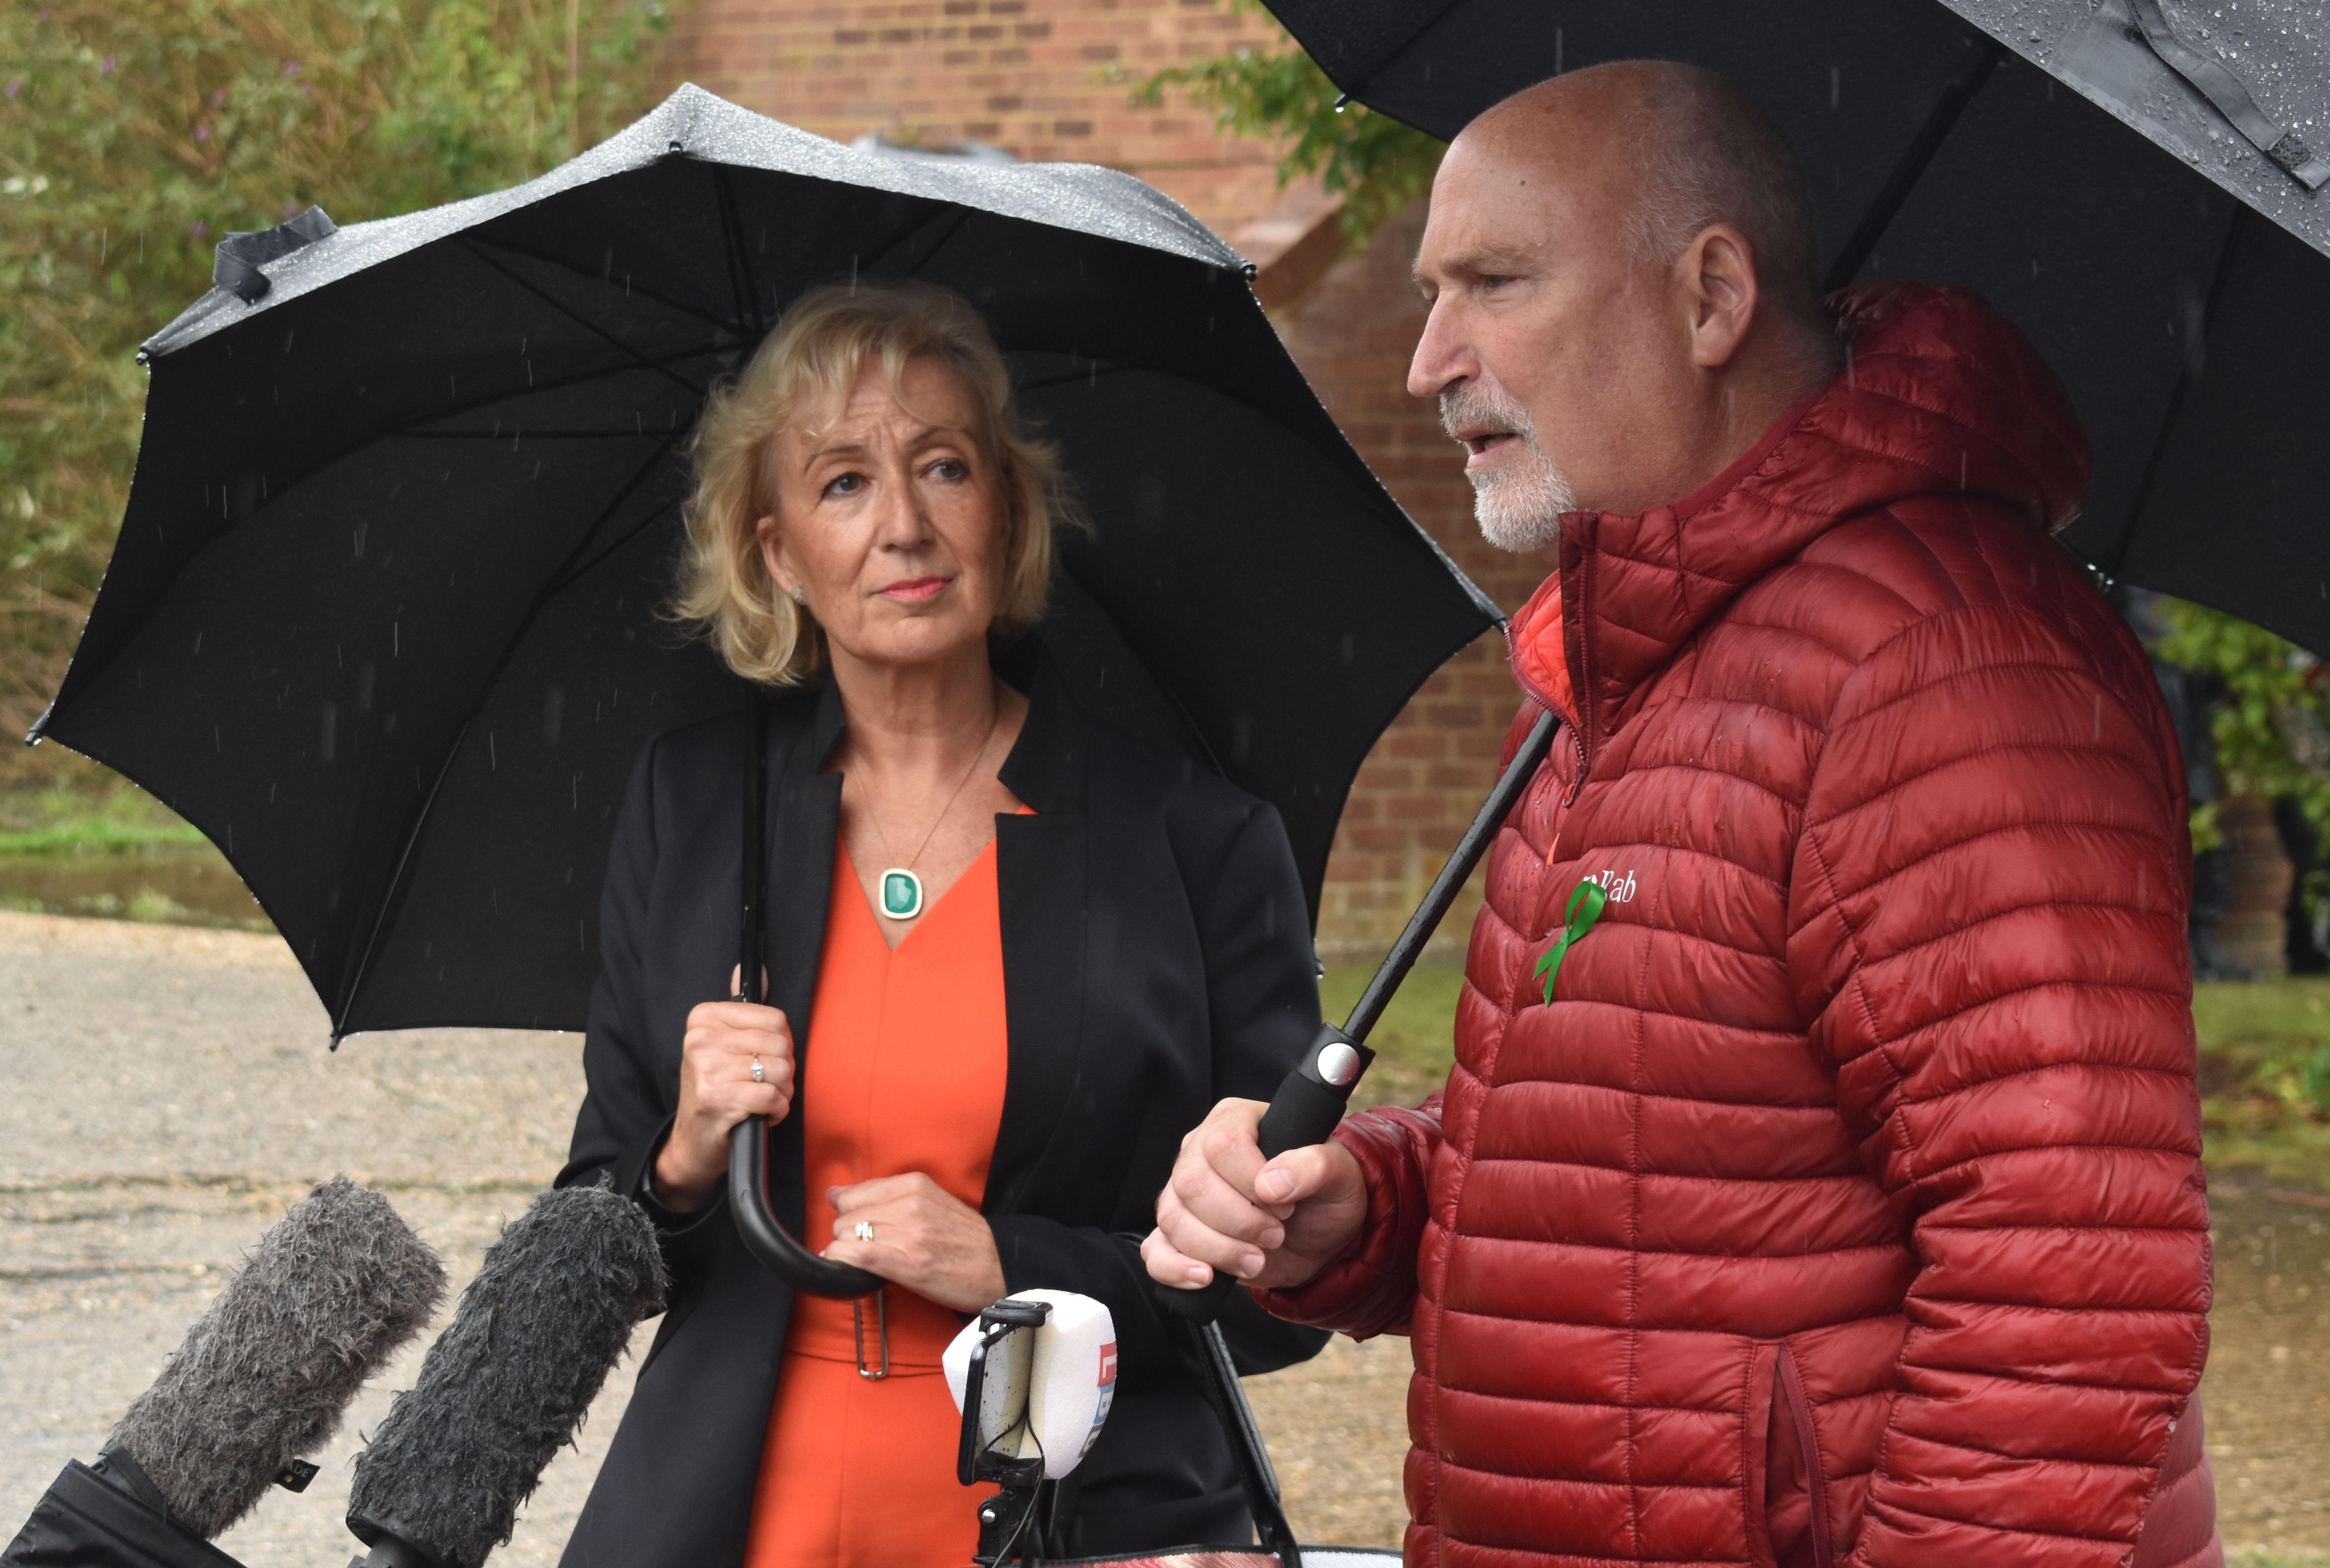 Andrea Leadsom MP and Harry Dunn family spokesman Radd Seiger arrive to speak to the media in Brackley, Northamptonshire, where the MP called on Donald Trump to personally intervene to ensure suspect Anne Sacoolas faces trial over teenager Harry Dunn's death a year ago.